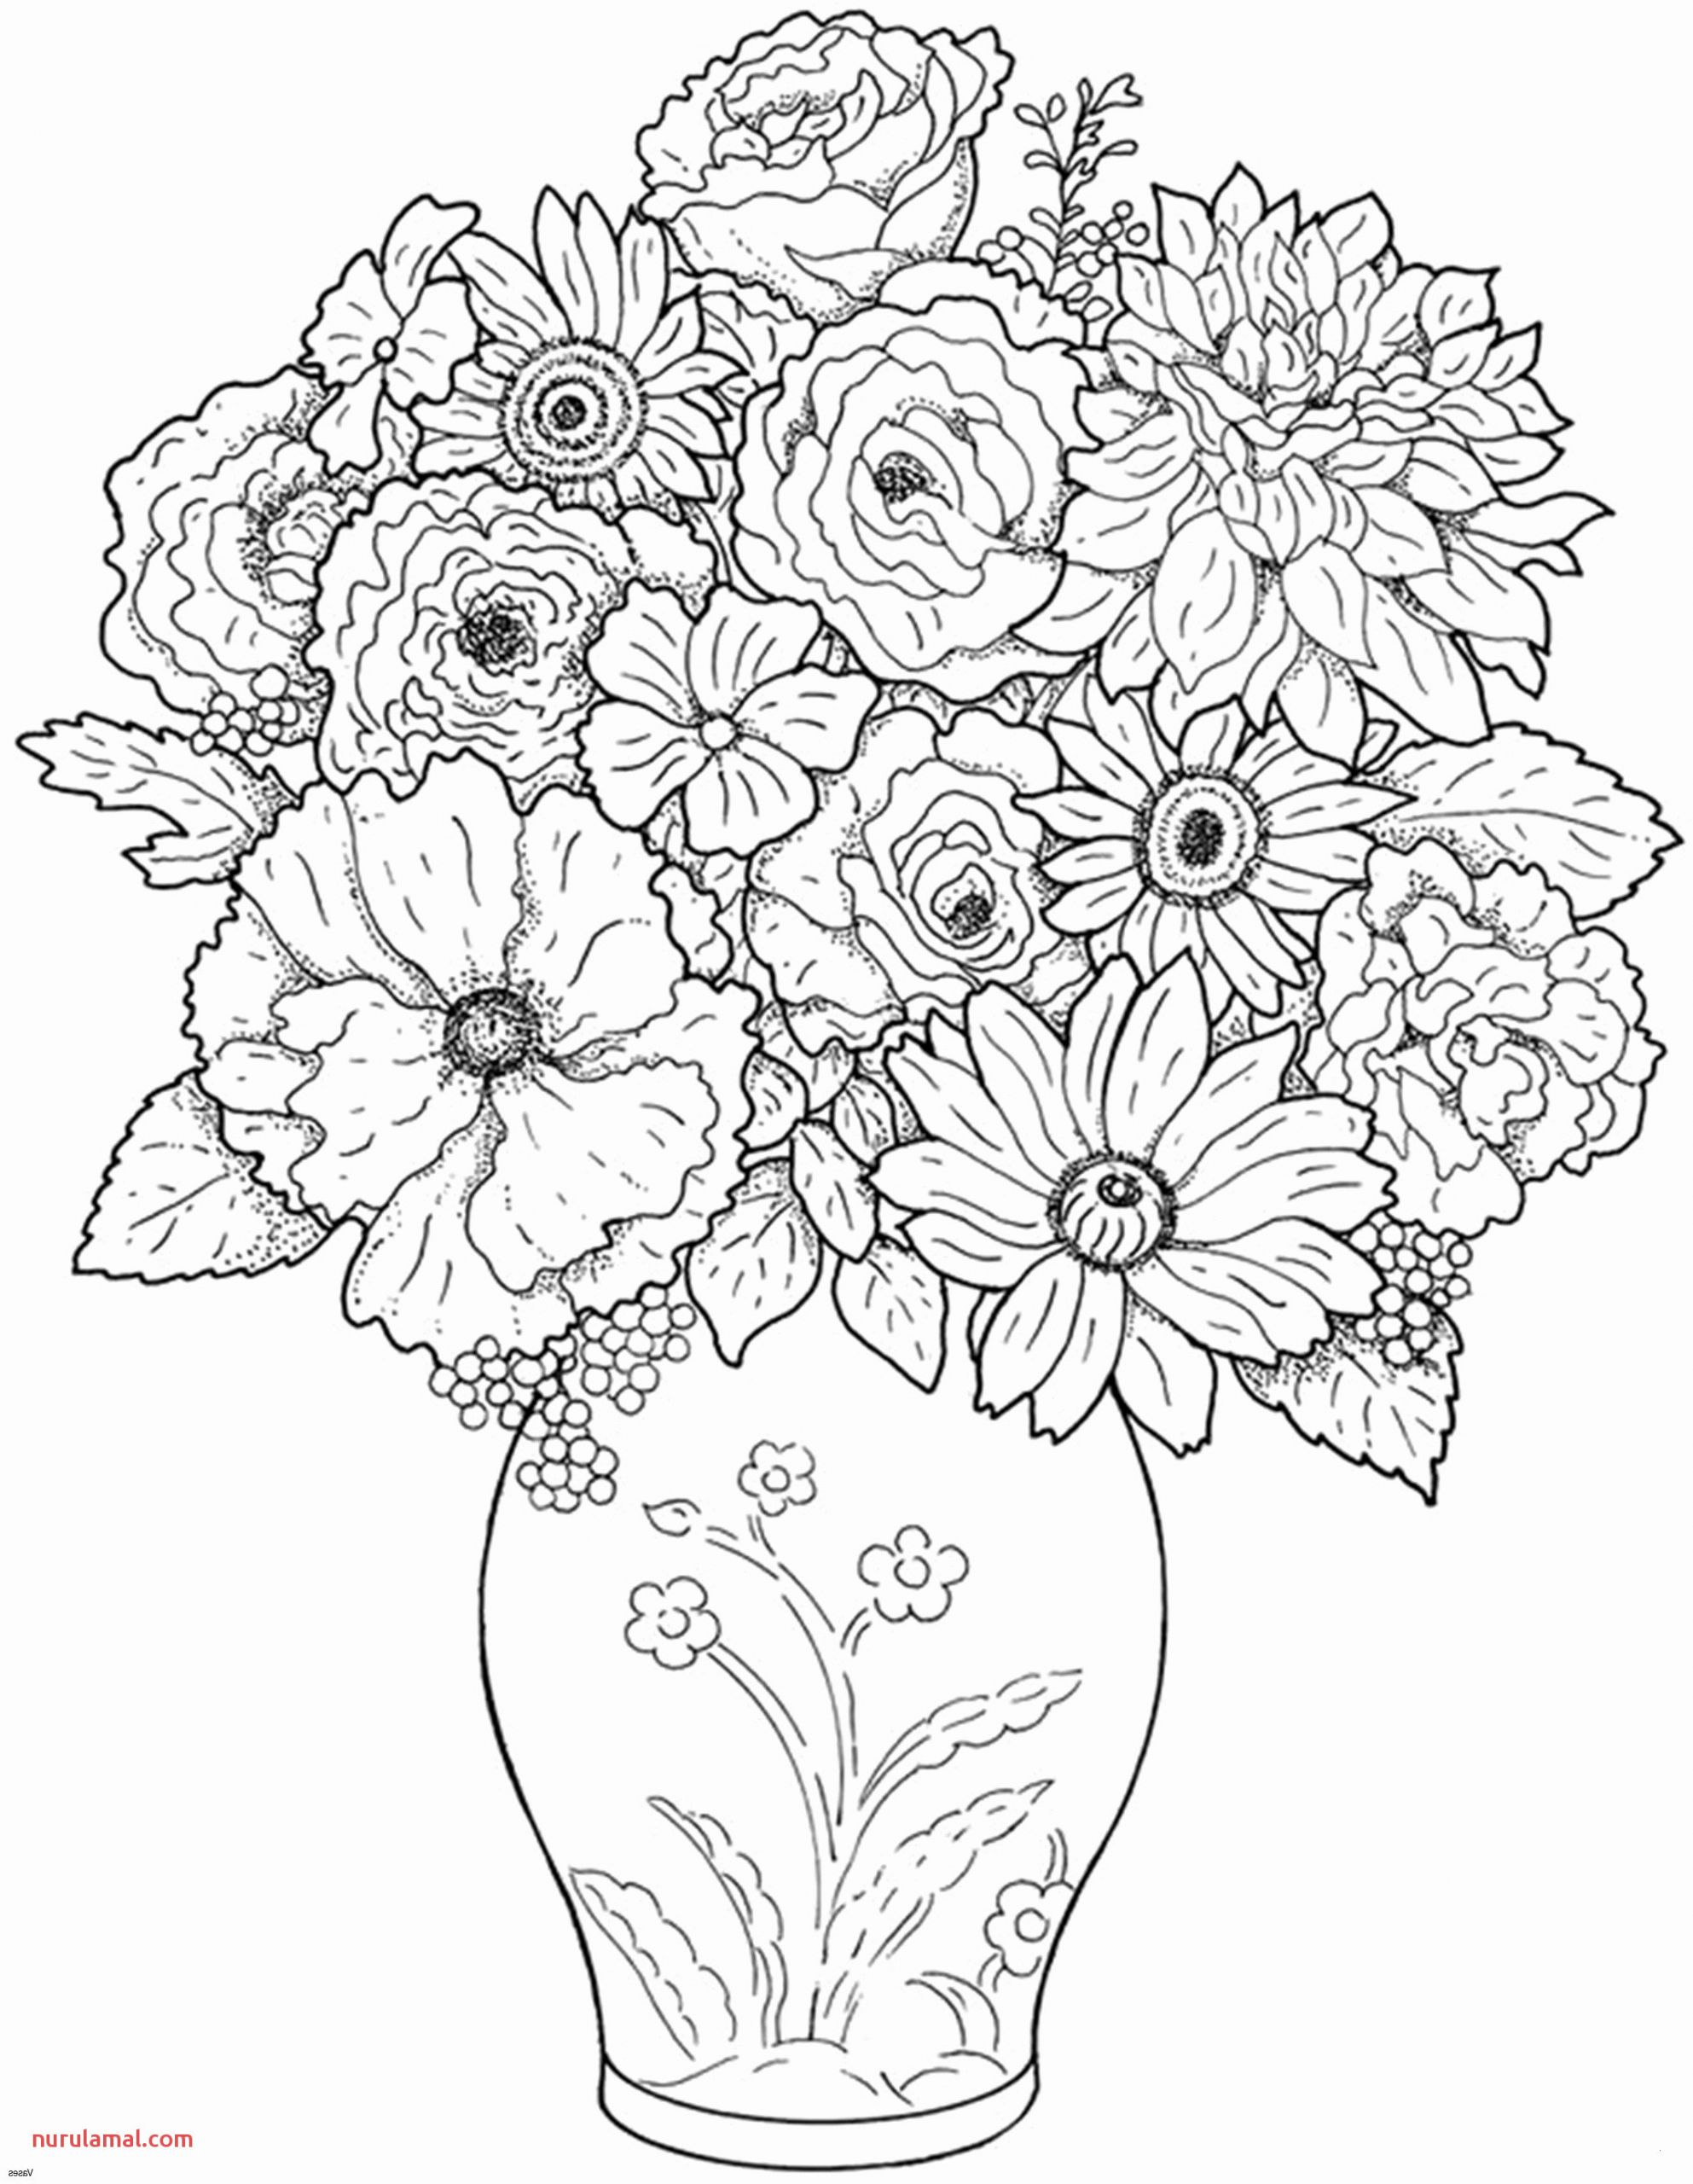 coloring page for january unique photos cactus vase luxury cactus coloring page lovely coloring best of coloring page for january